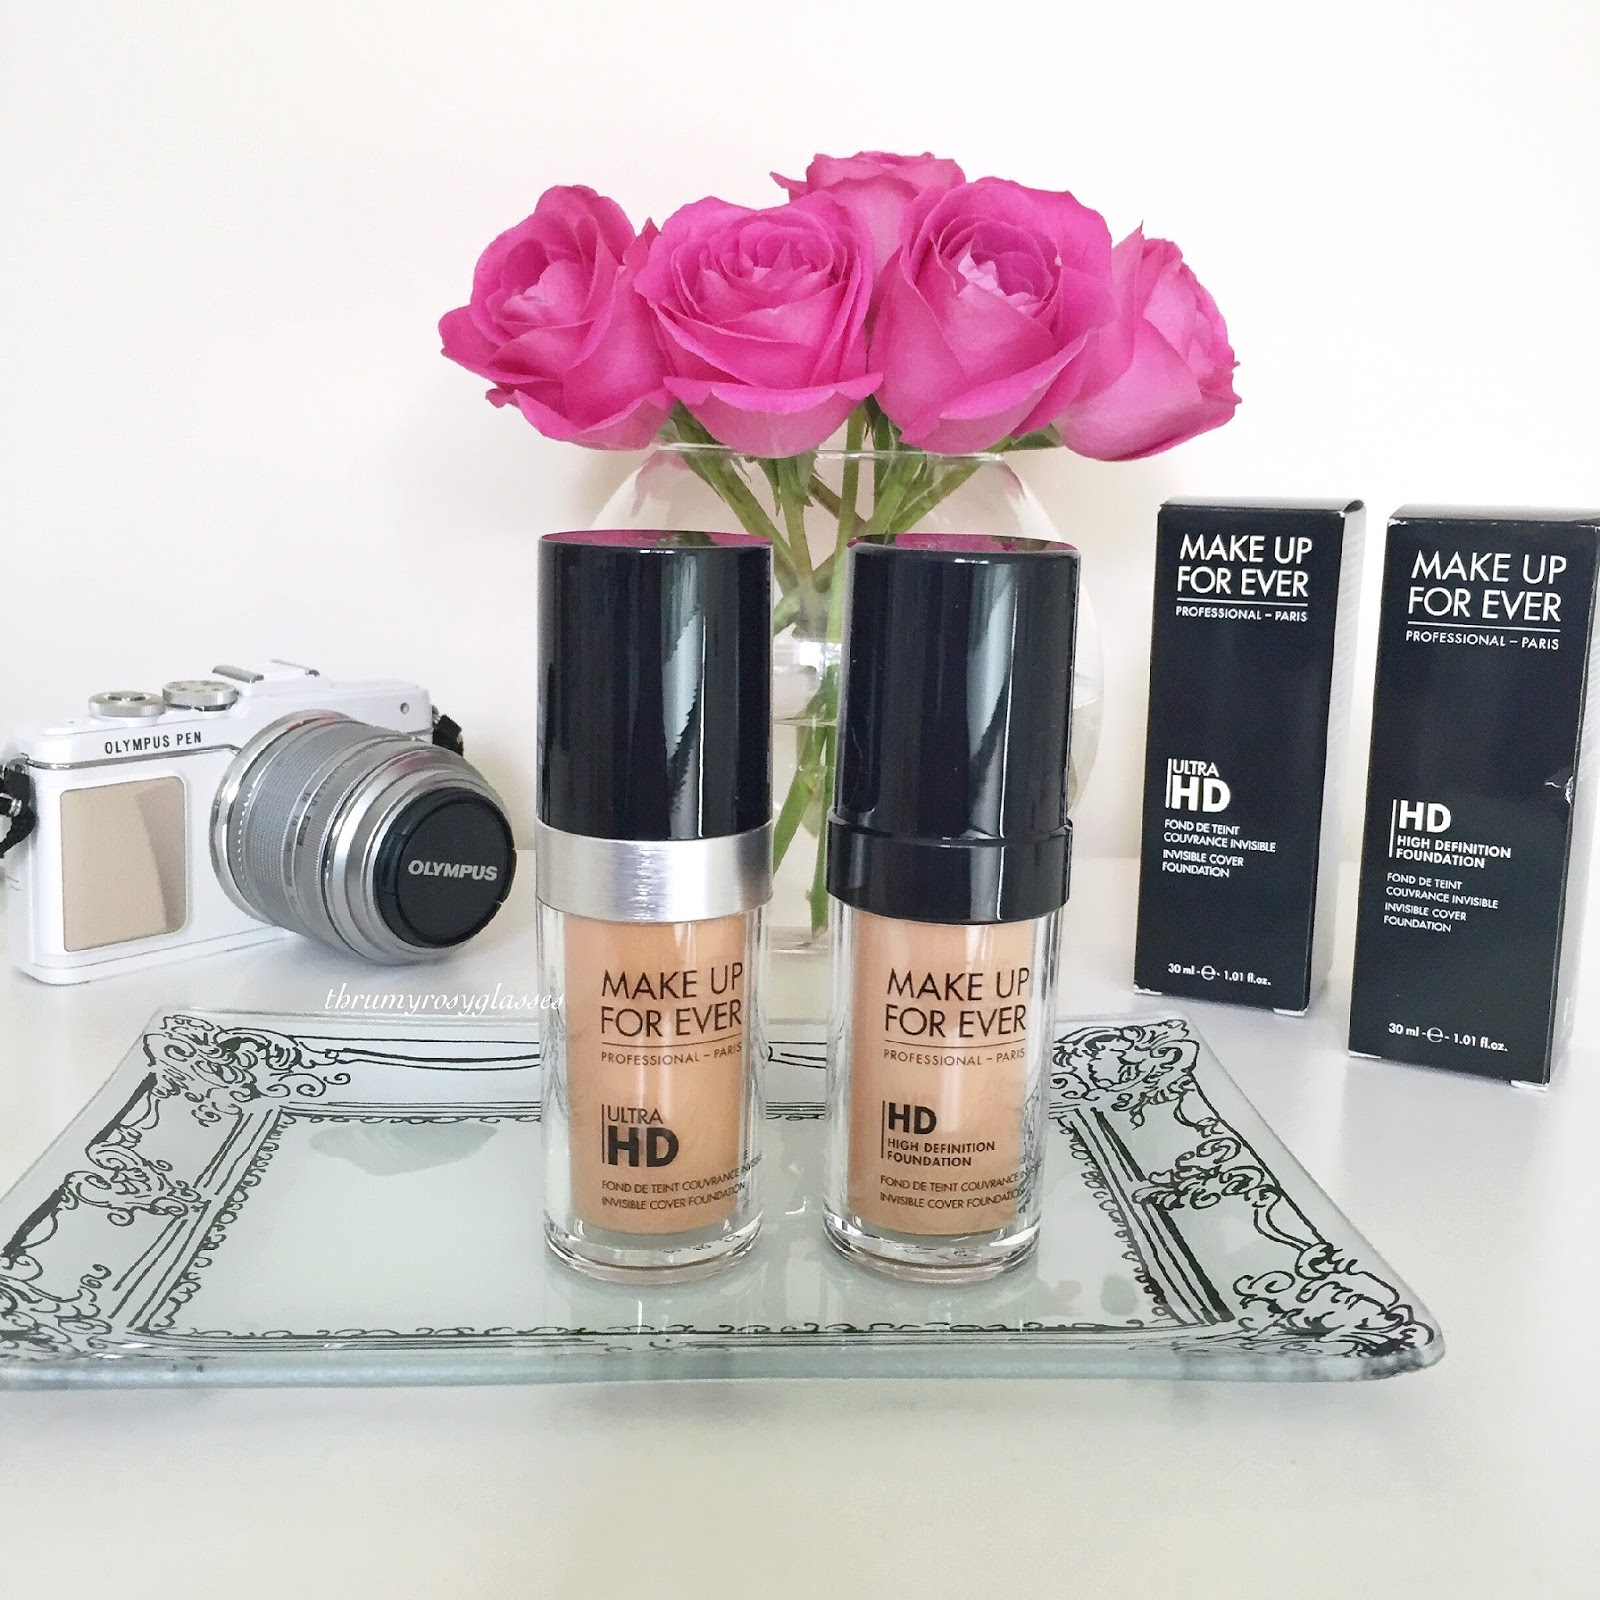 Hd makeup forever foundation